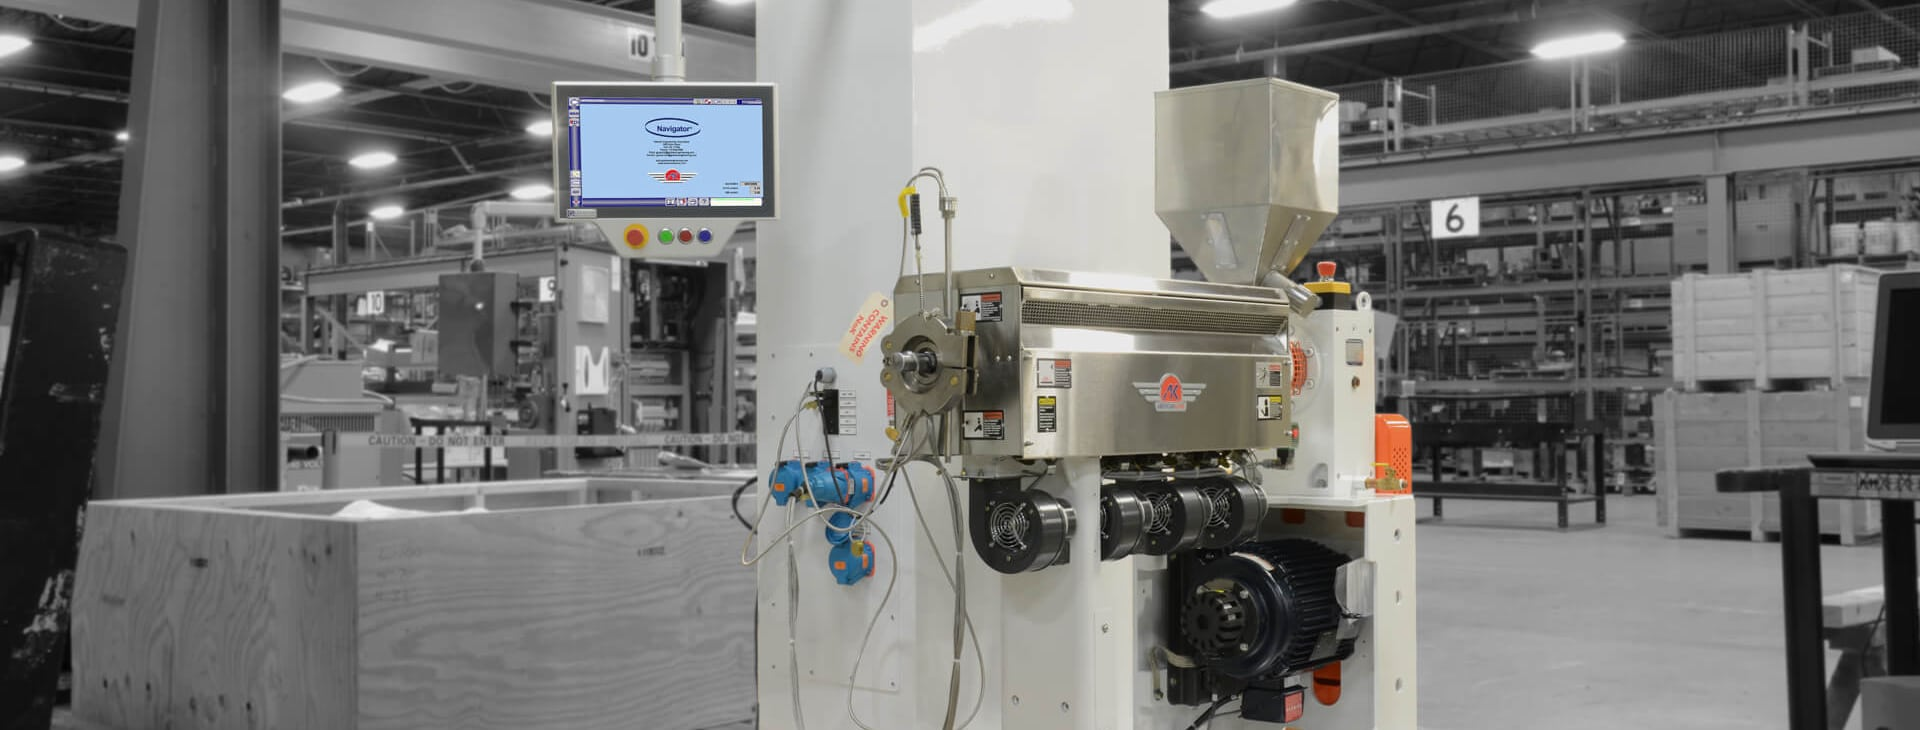 XC navigator on an extrusion machine showing the easy controls